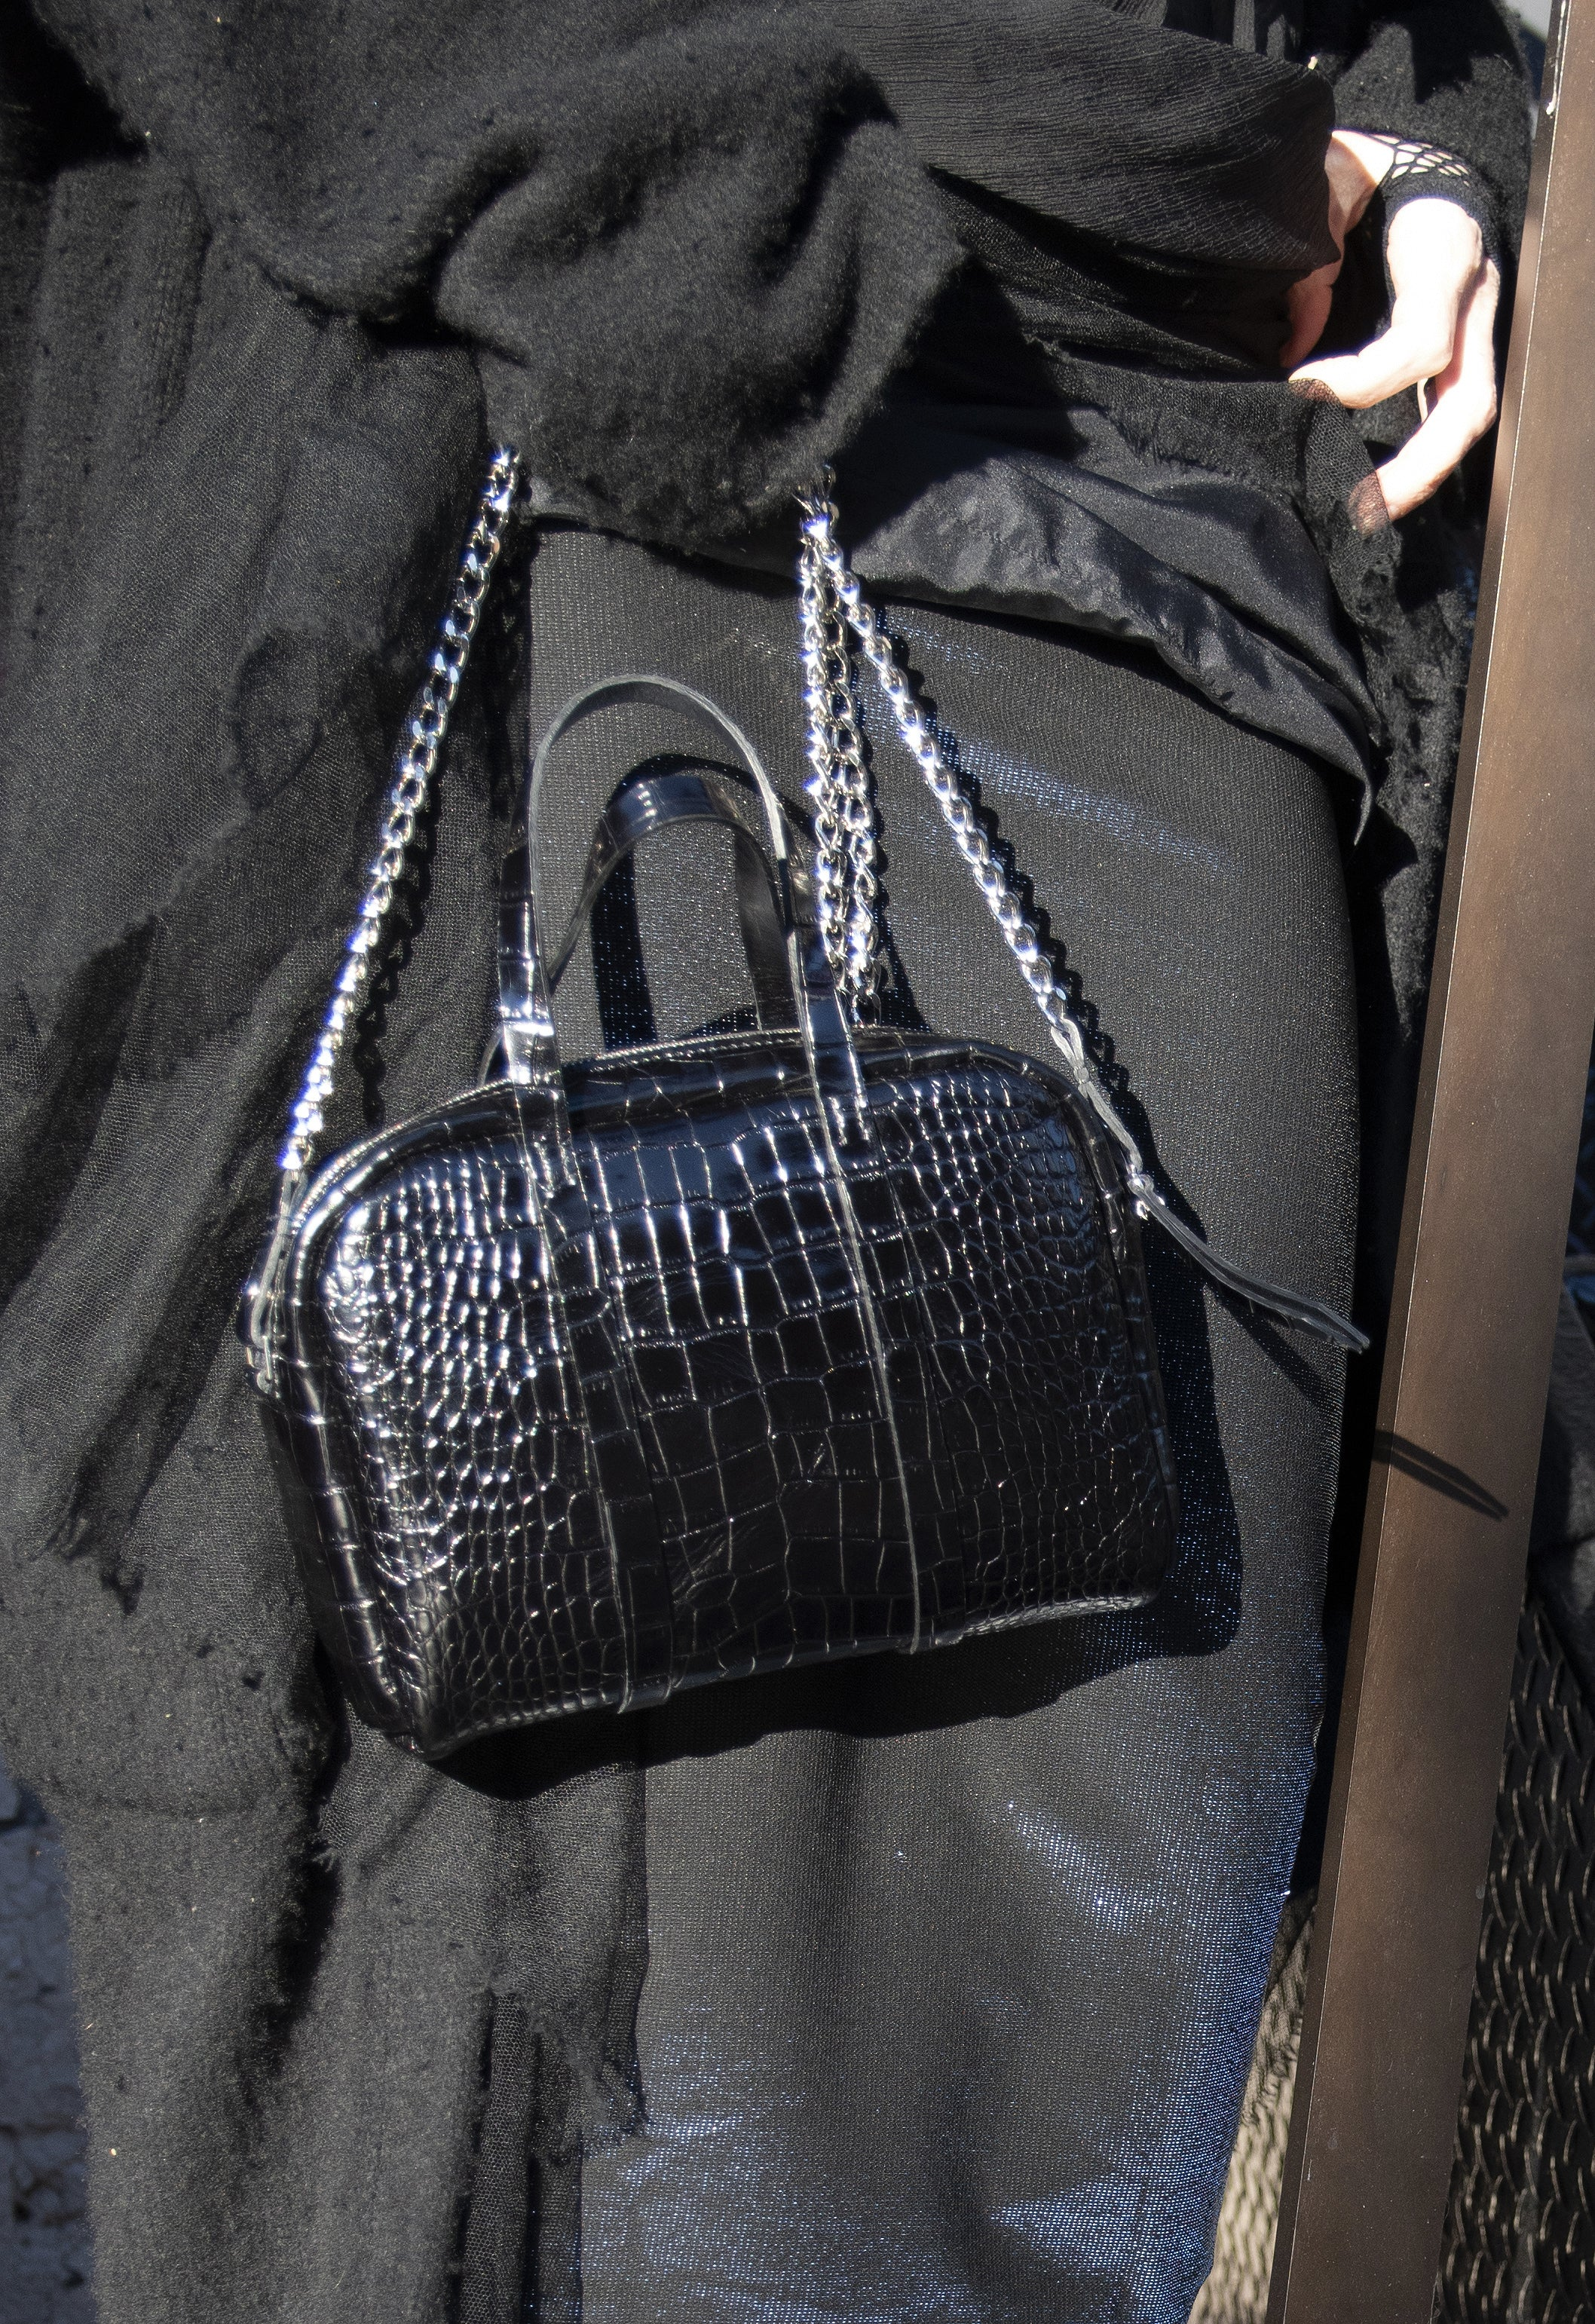 The Croc Chain Duffle Bag